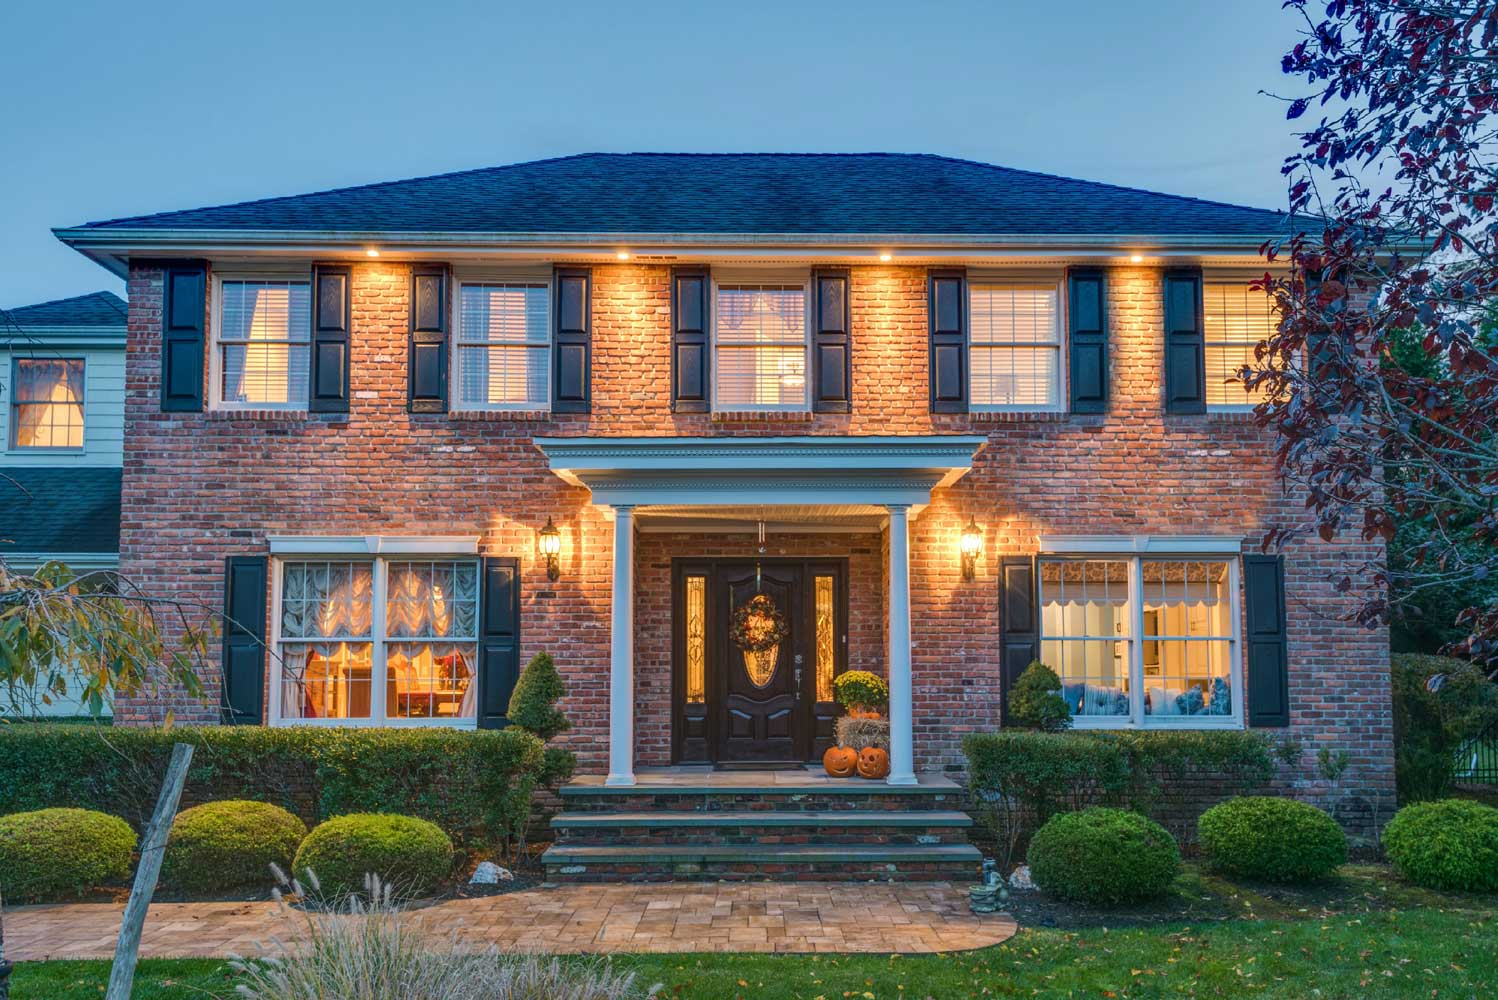 <b>East Islip, New York</b><br/><i>4 Bedrooms, 3,500 sq. ft.</i><br/>Deer Run estate home with pool